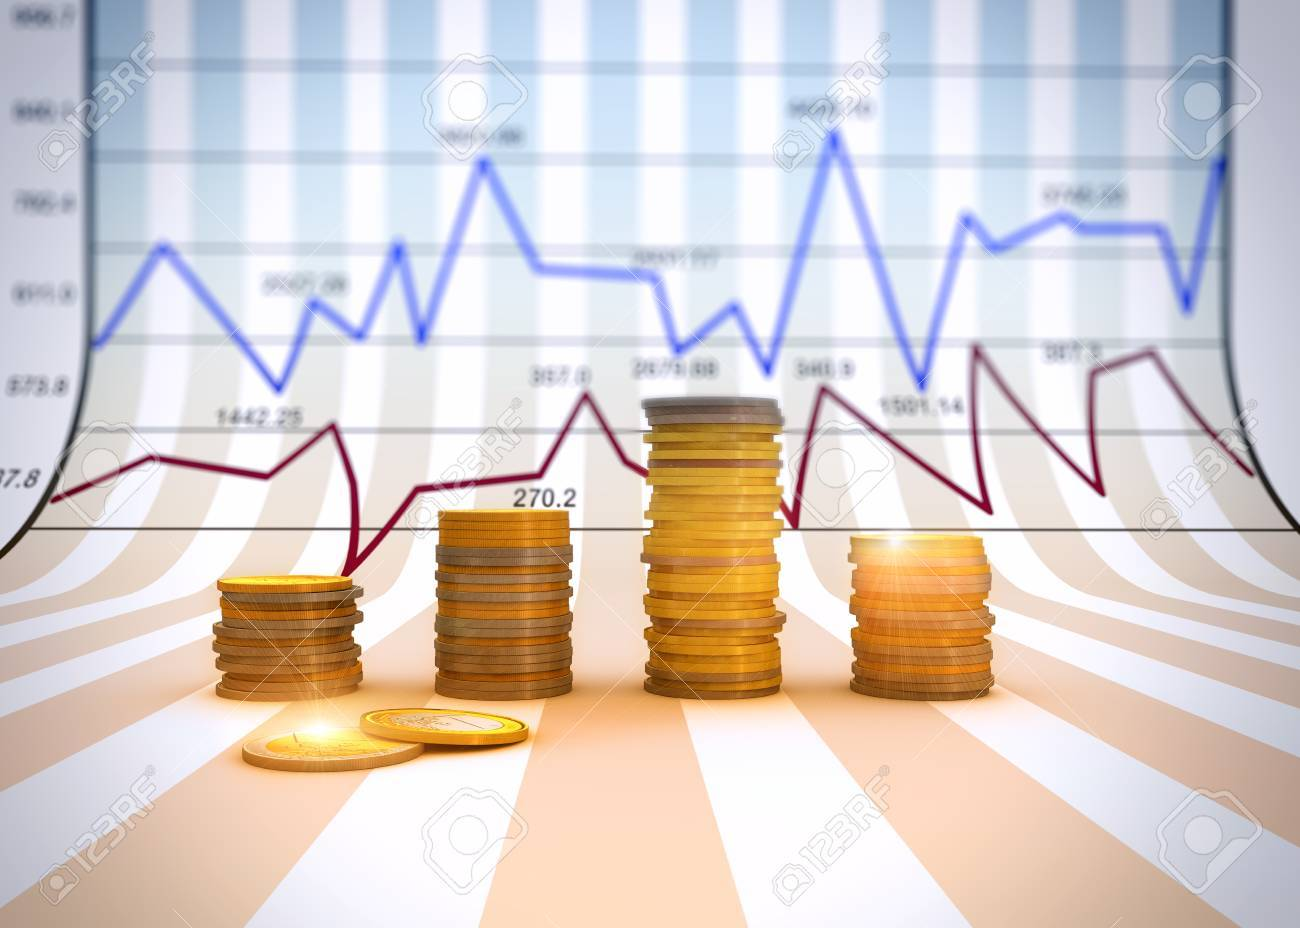 Financial business chart and graphs - 25579238